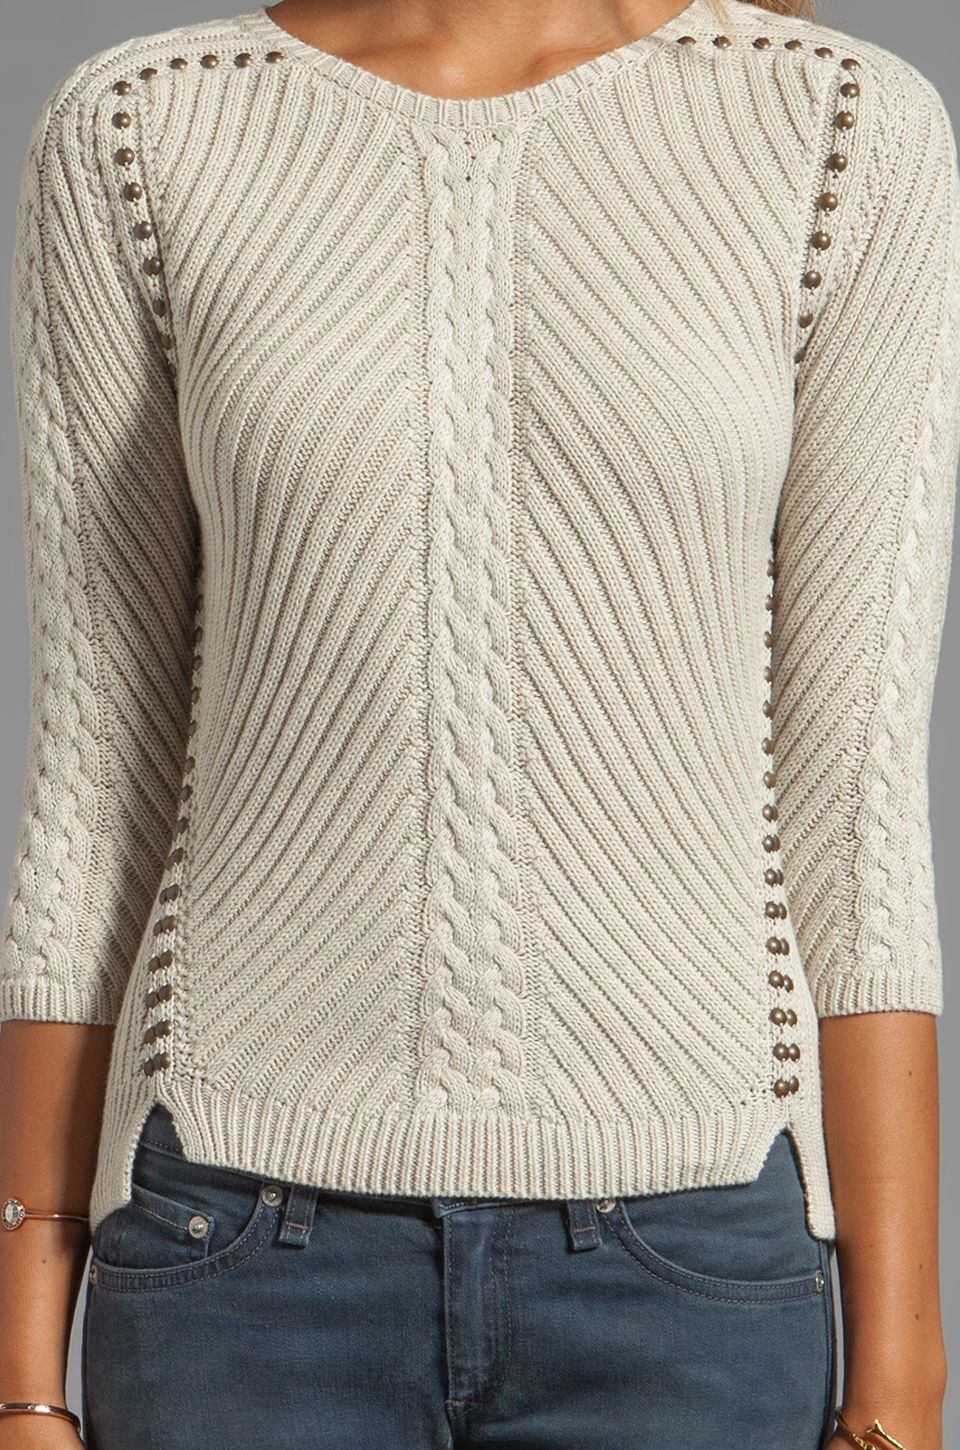 Autumn Cashmere Studded Rib Cable Crew Sweater en Chanvre | REVOLVE ...